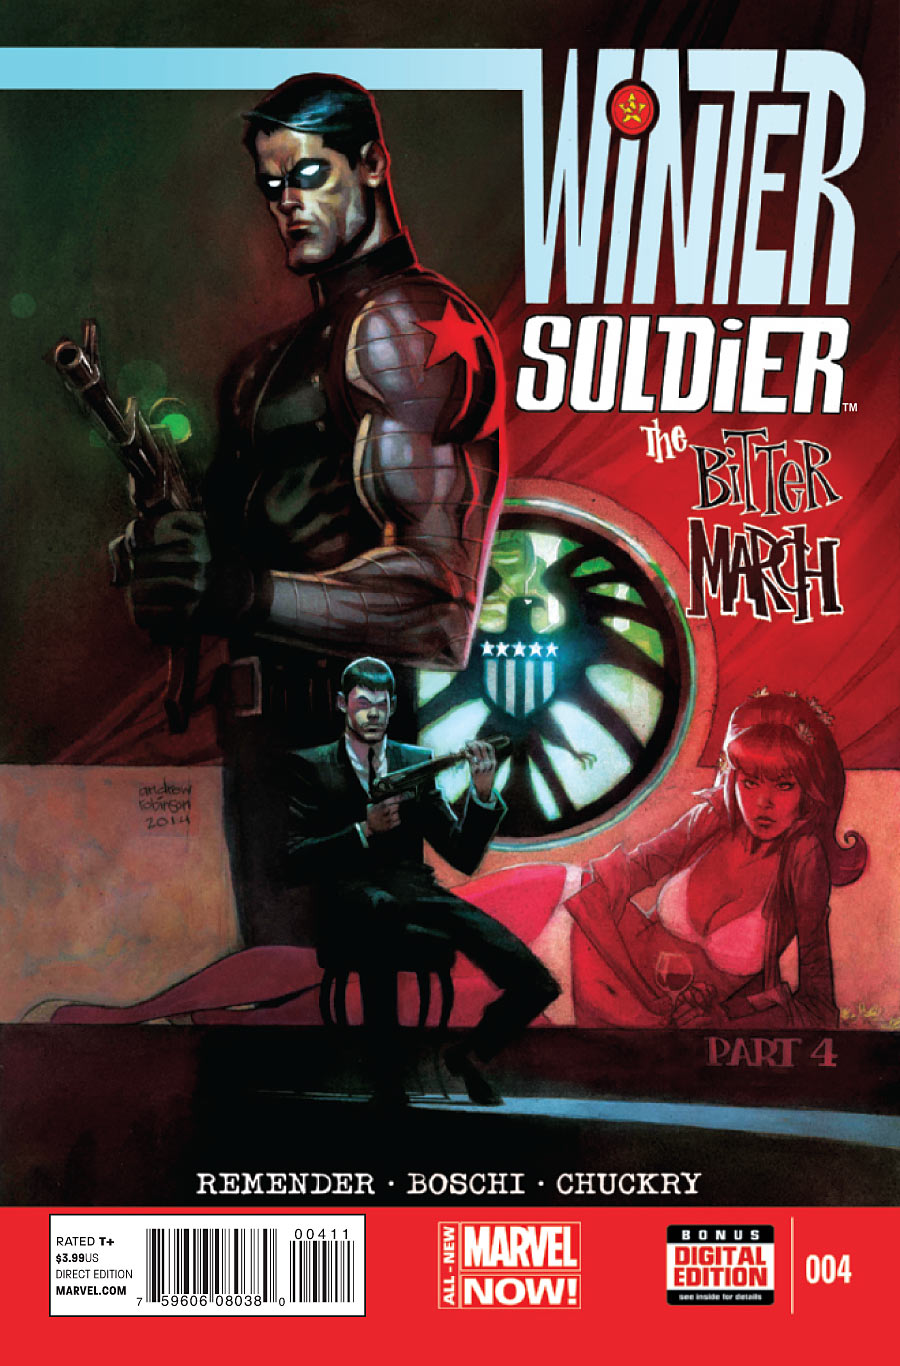 Copertina di Winter Solider: The Bitter March 4 del 2014, di Andrew Robinson